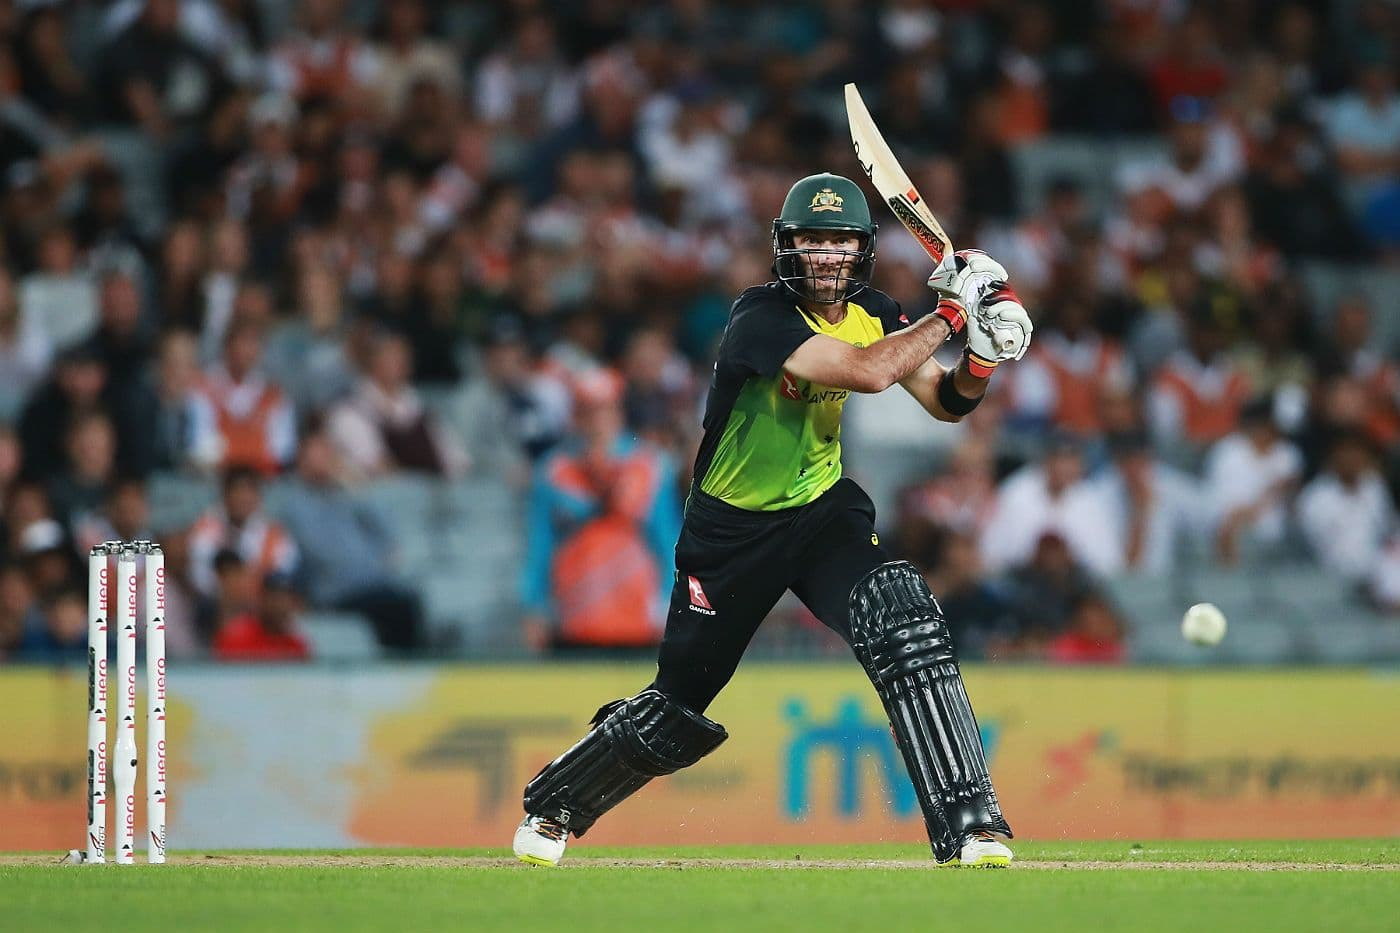 Australian Cricket Awards: Glenn Maxwell named T20 Player of the Year